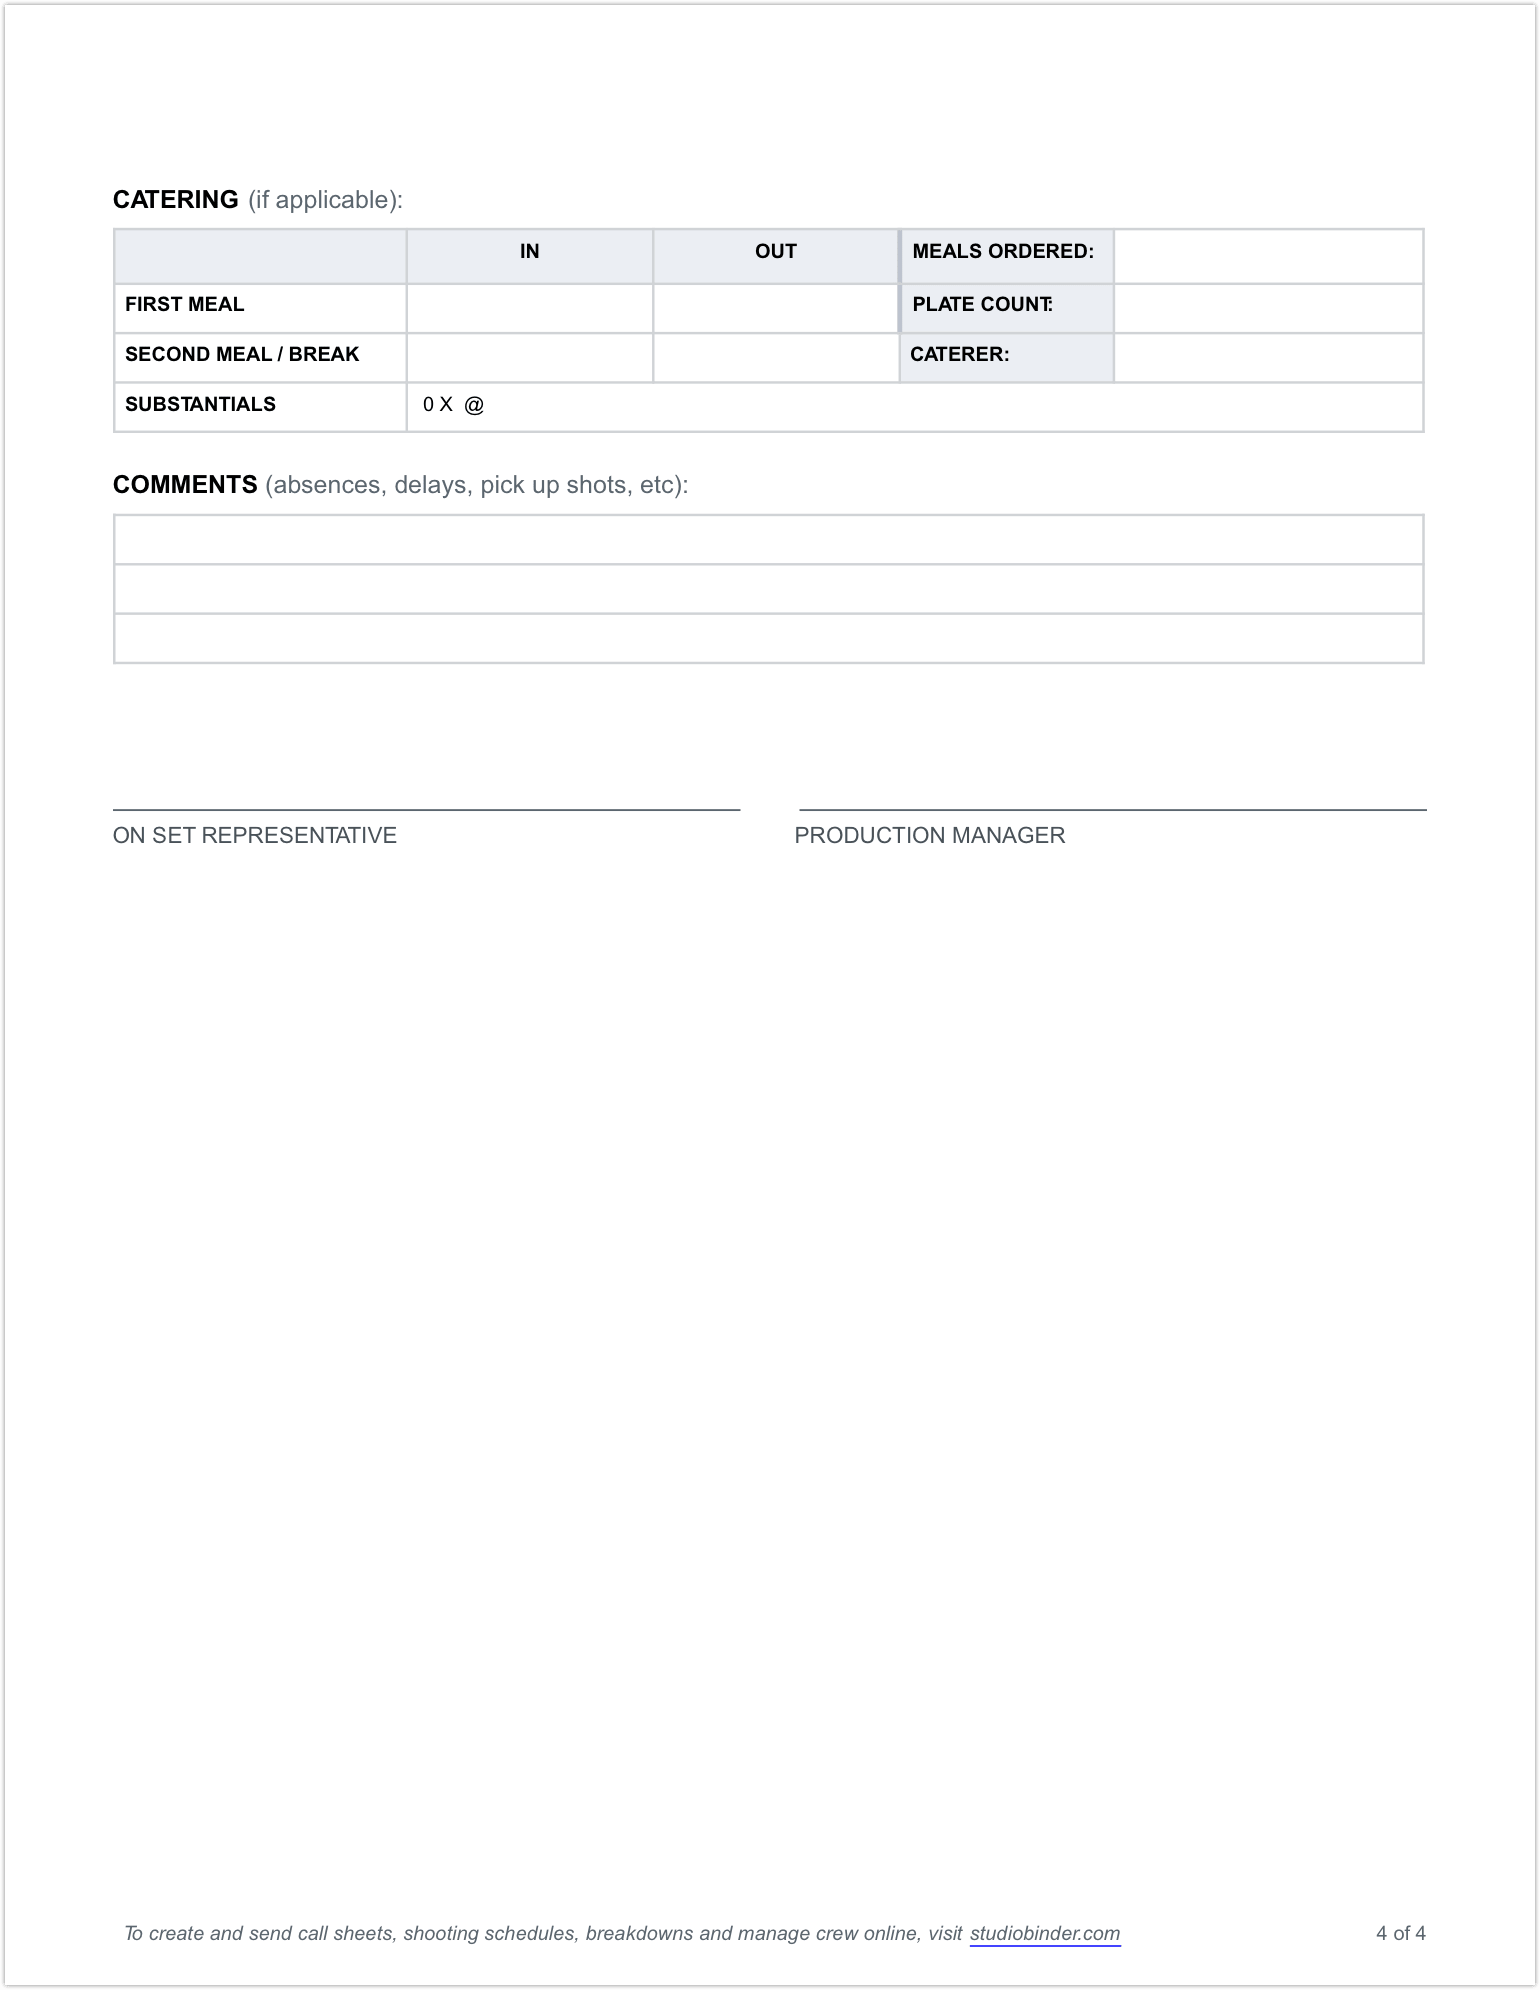 Daily Production Report Template - Page 4 - StudioBinder